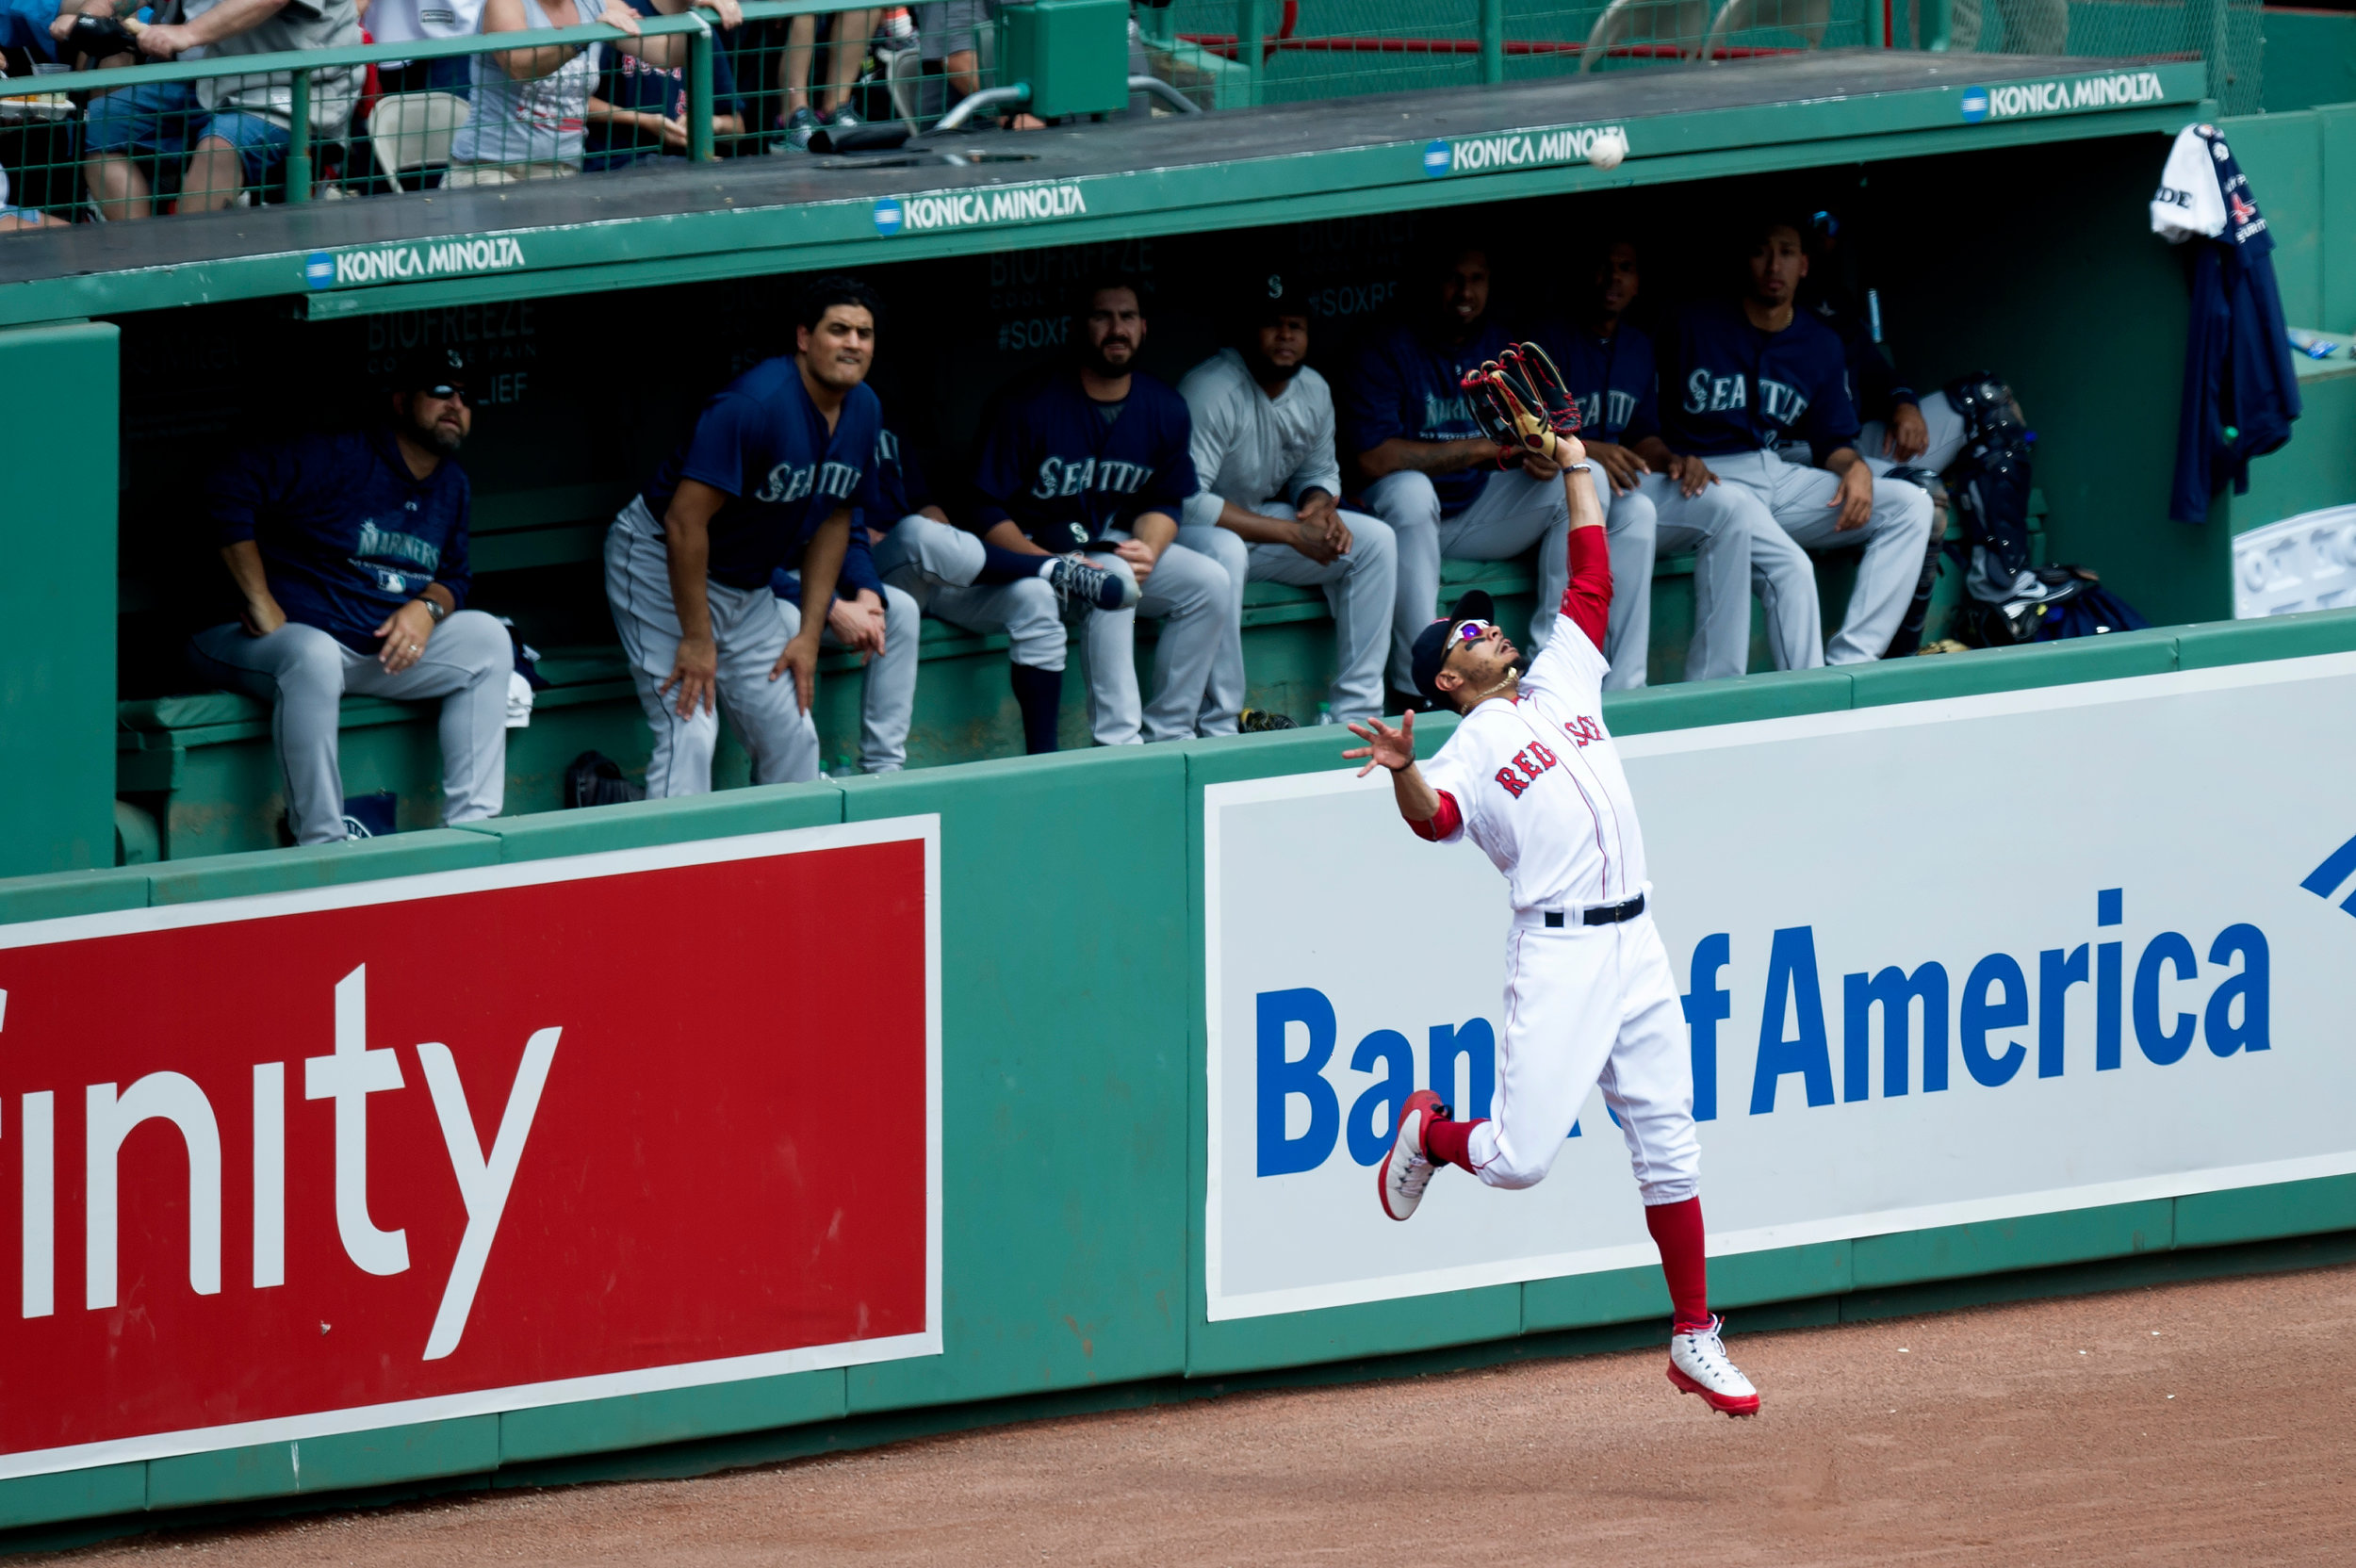 Boston Red Sox outfielder Mookie Betts makes a catch in the outfield during the game against the Seattle Mariners at Fenway Park in Boston, Massachusetts on Sunday, June 24, 2018.